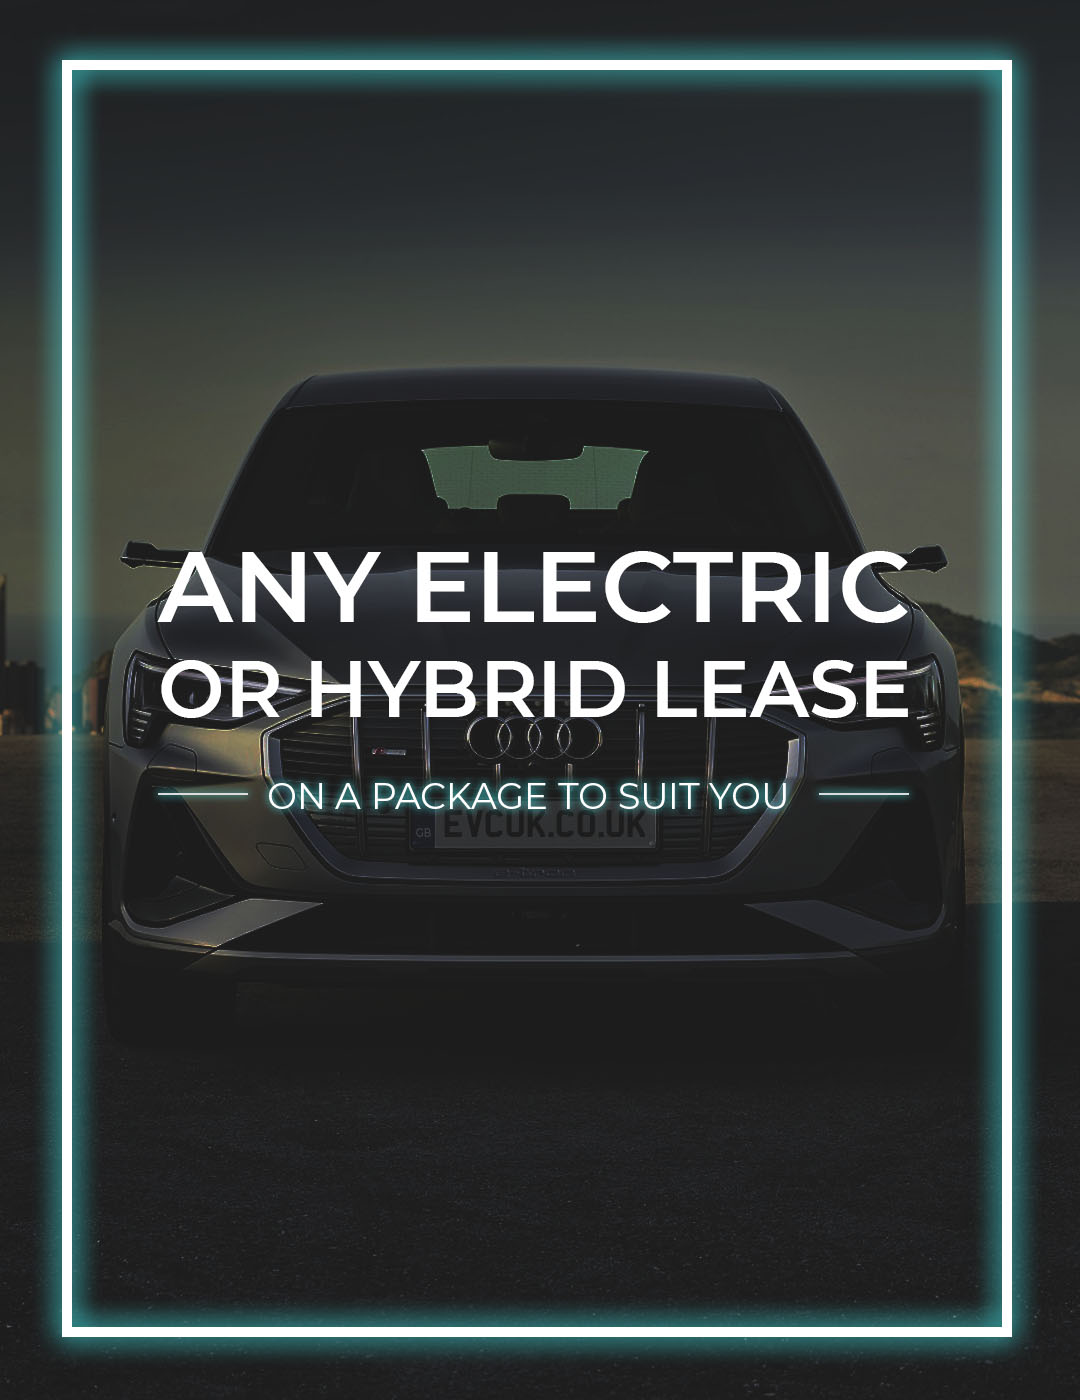 Any Electric or Vehicle Lease Mobile